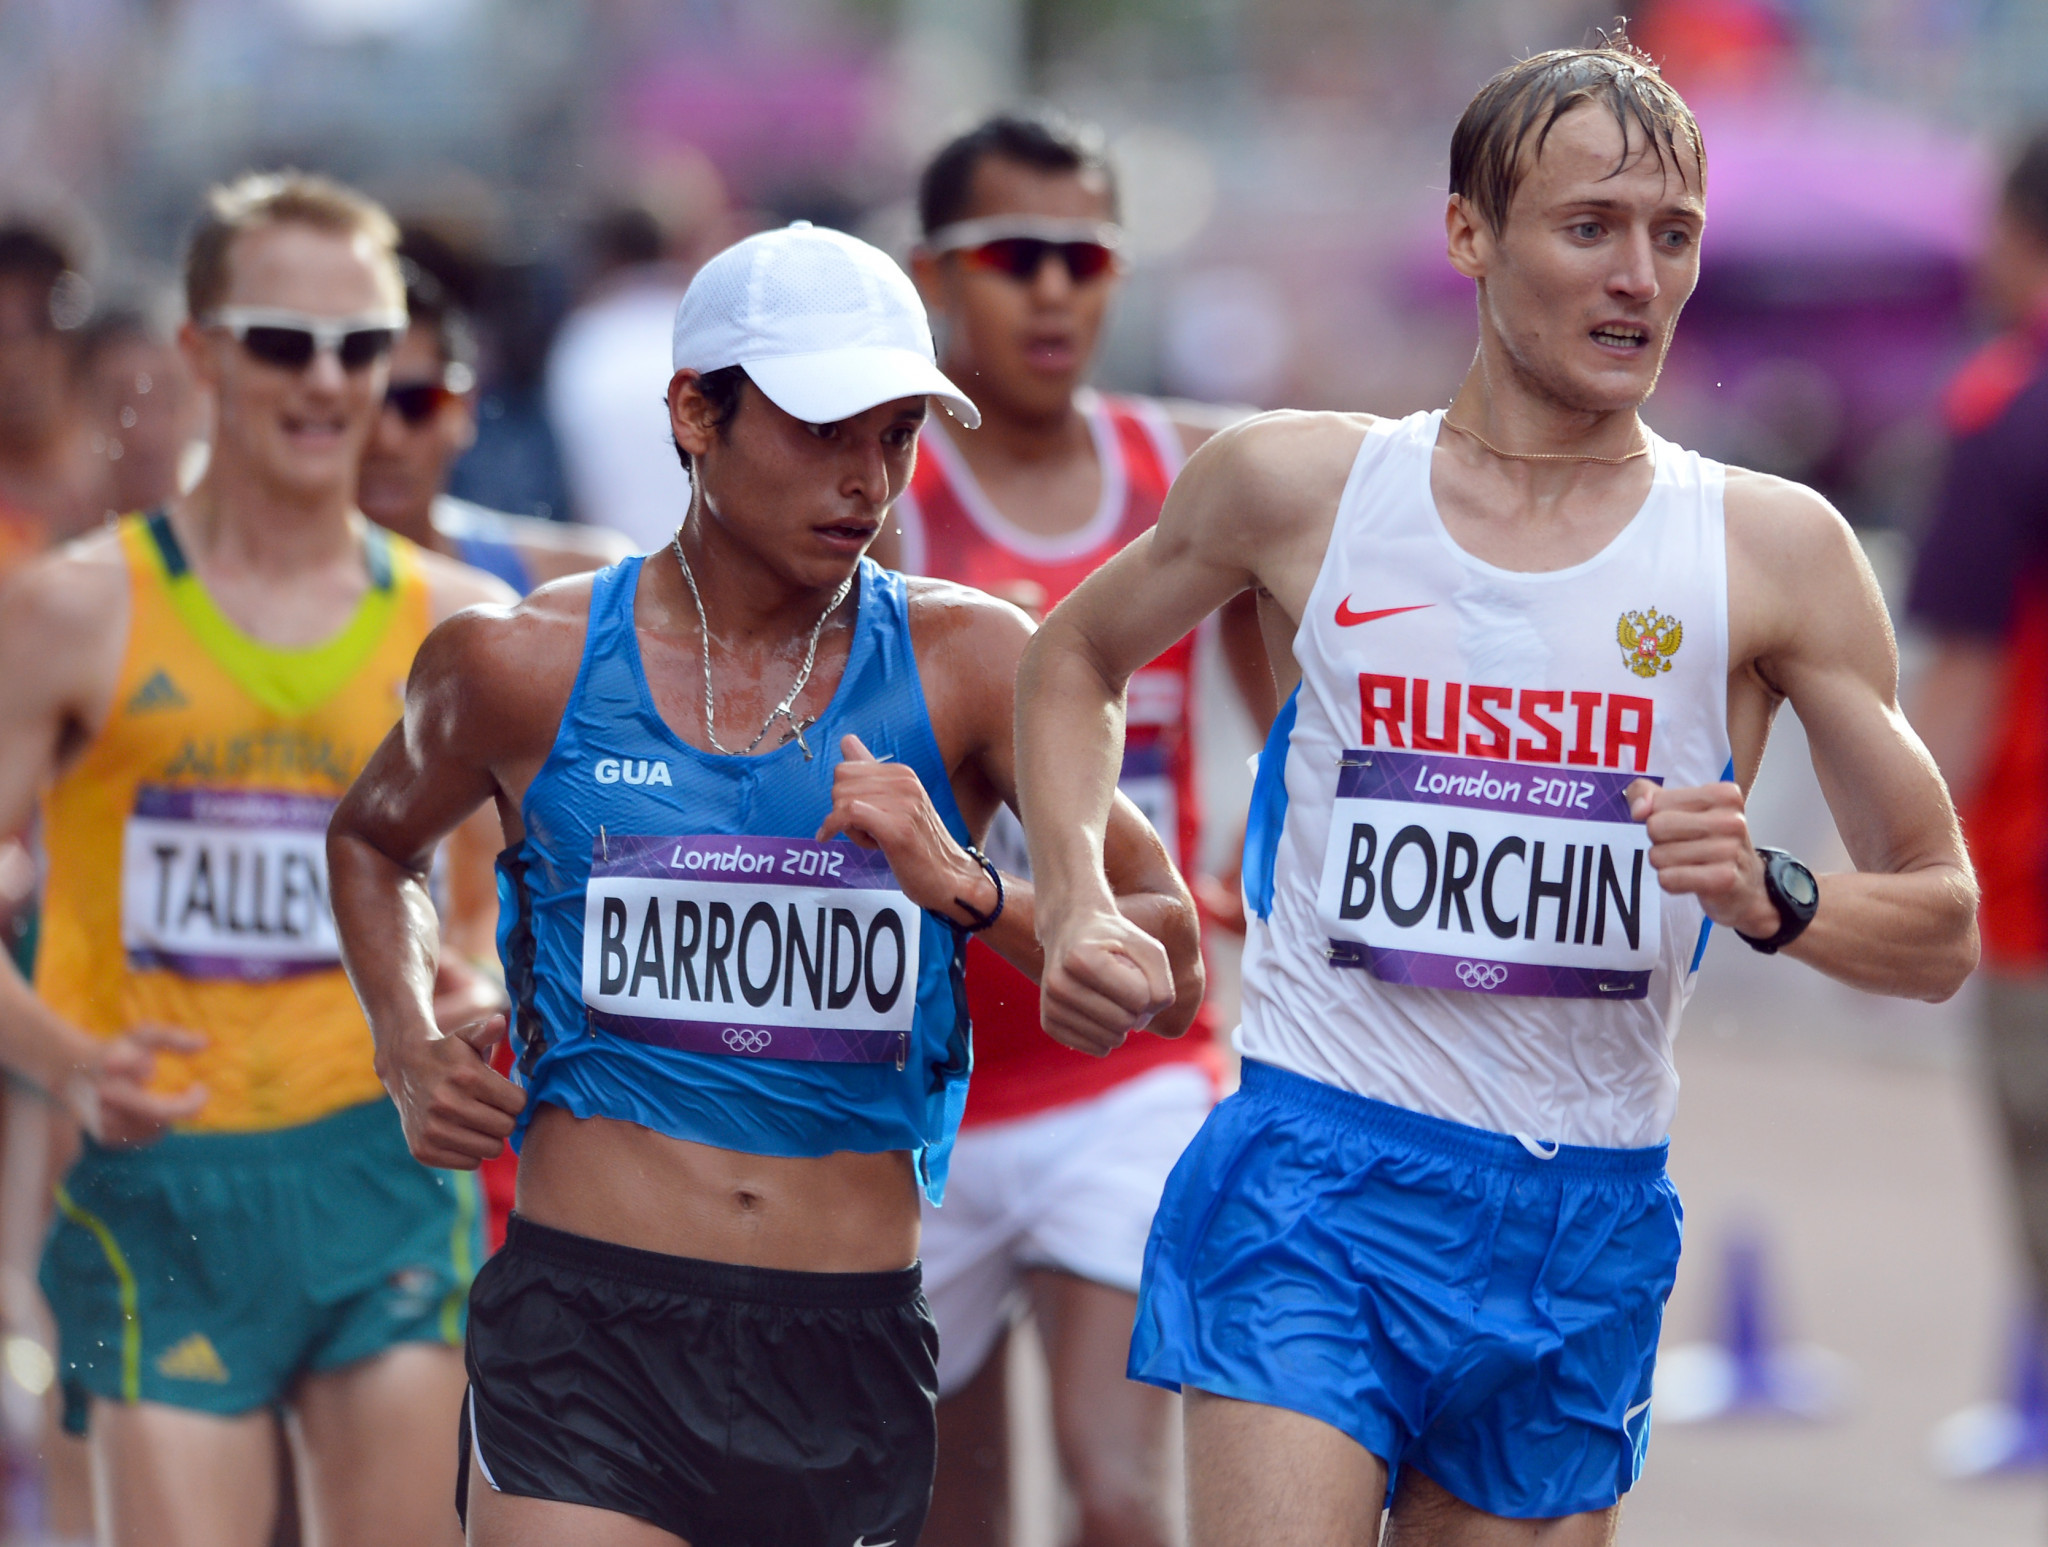 Russian racewalker Borchin rejects return to competition after eight year doping ban